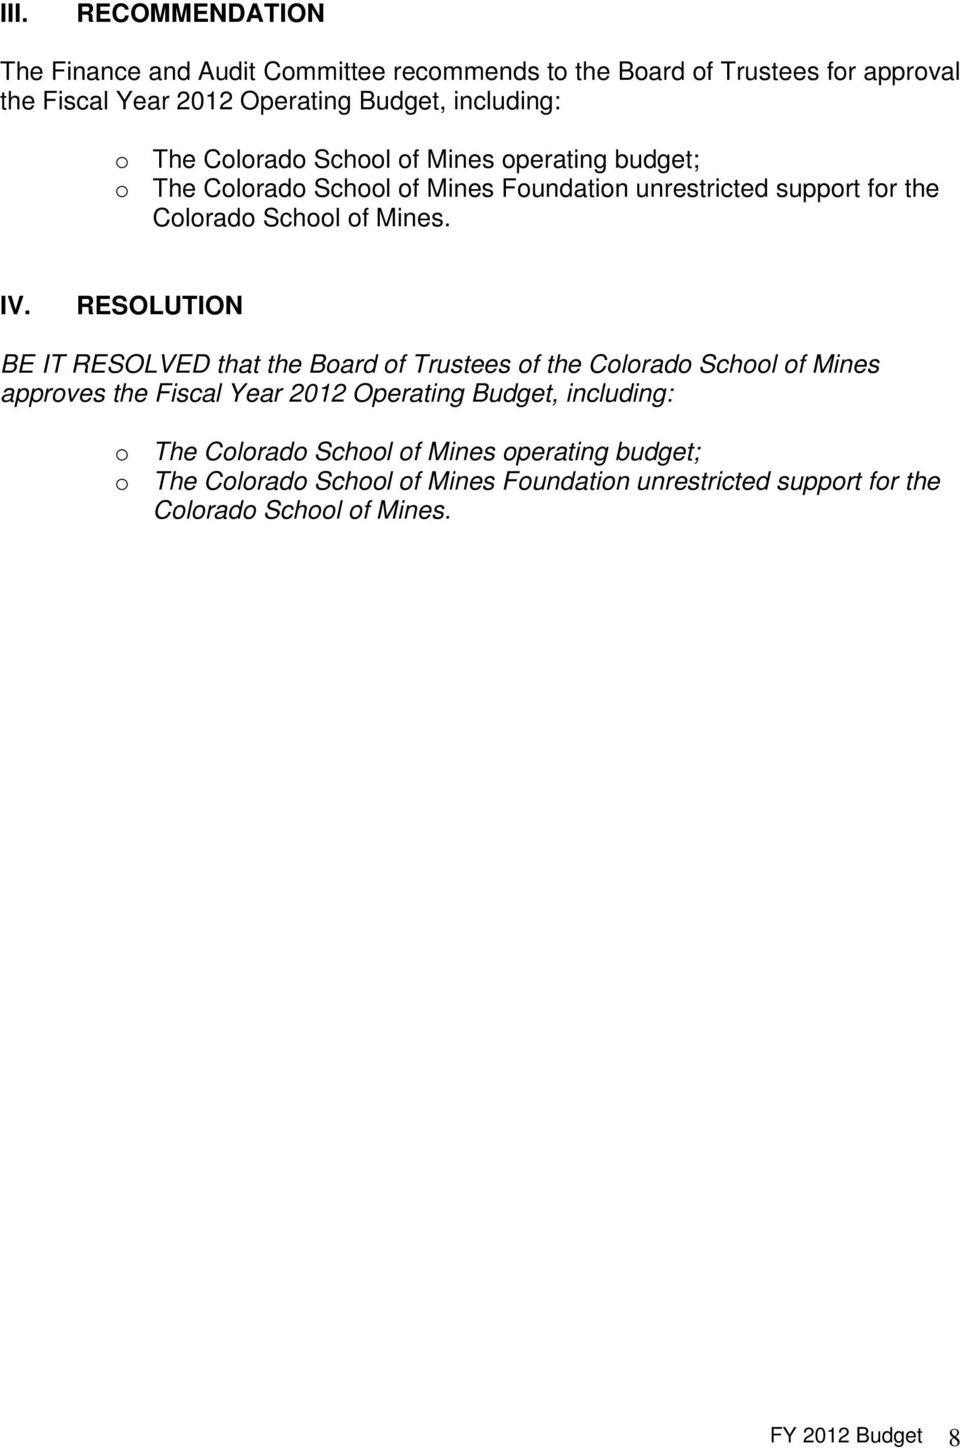 RESOLUTION BE IT RESOLVED that the Board of Trustees of the Colorado School of Mines approves the Fiscal Year 2012 Operating Budget, including: o The